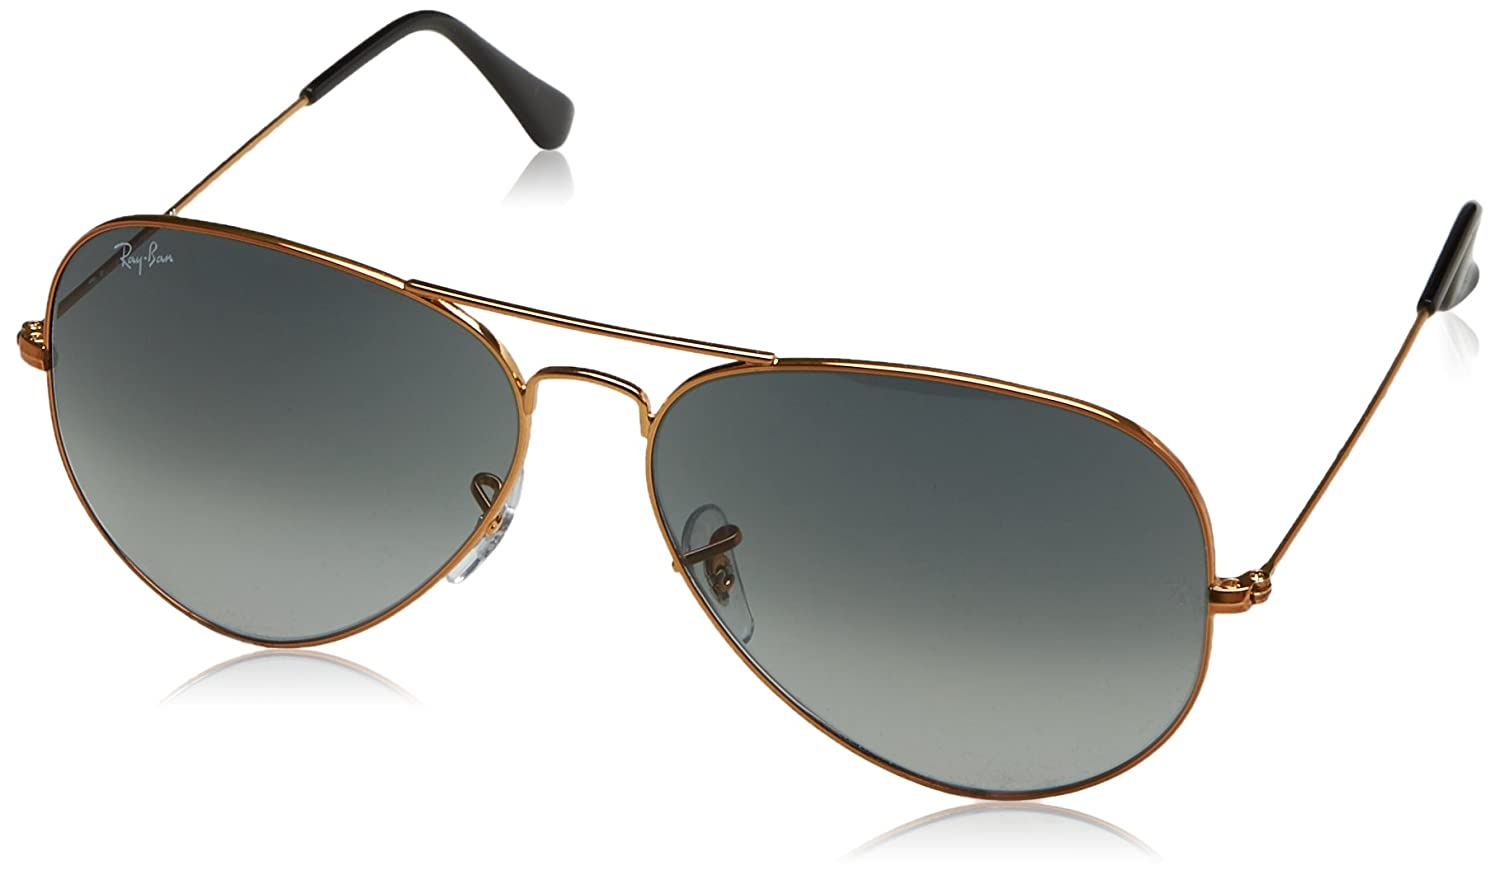 e4e81c277f2 Amazon.com  Ray-Ban Men s Aviator Large Metal Ii Sunglasses